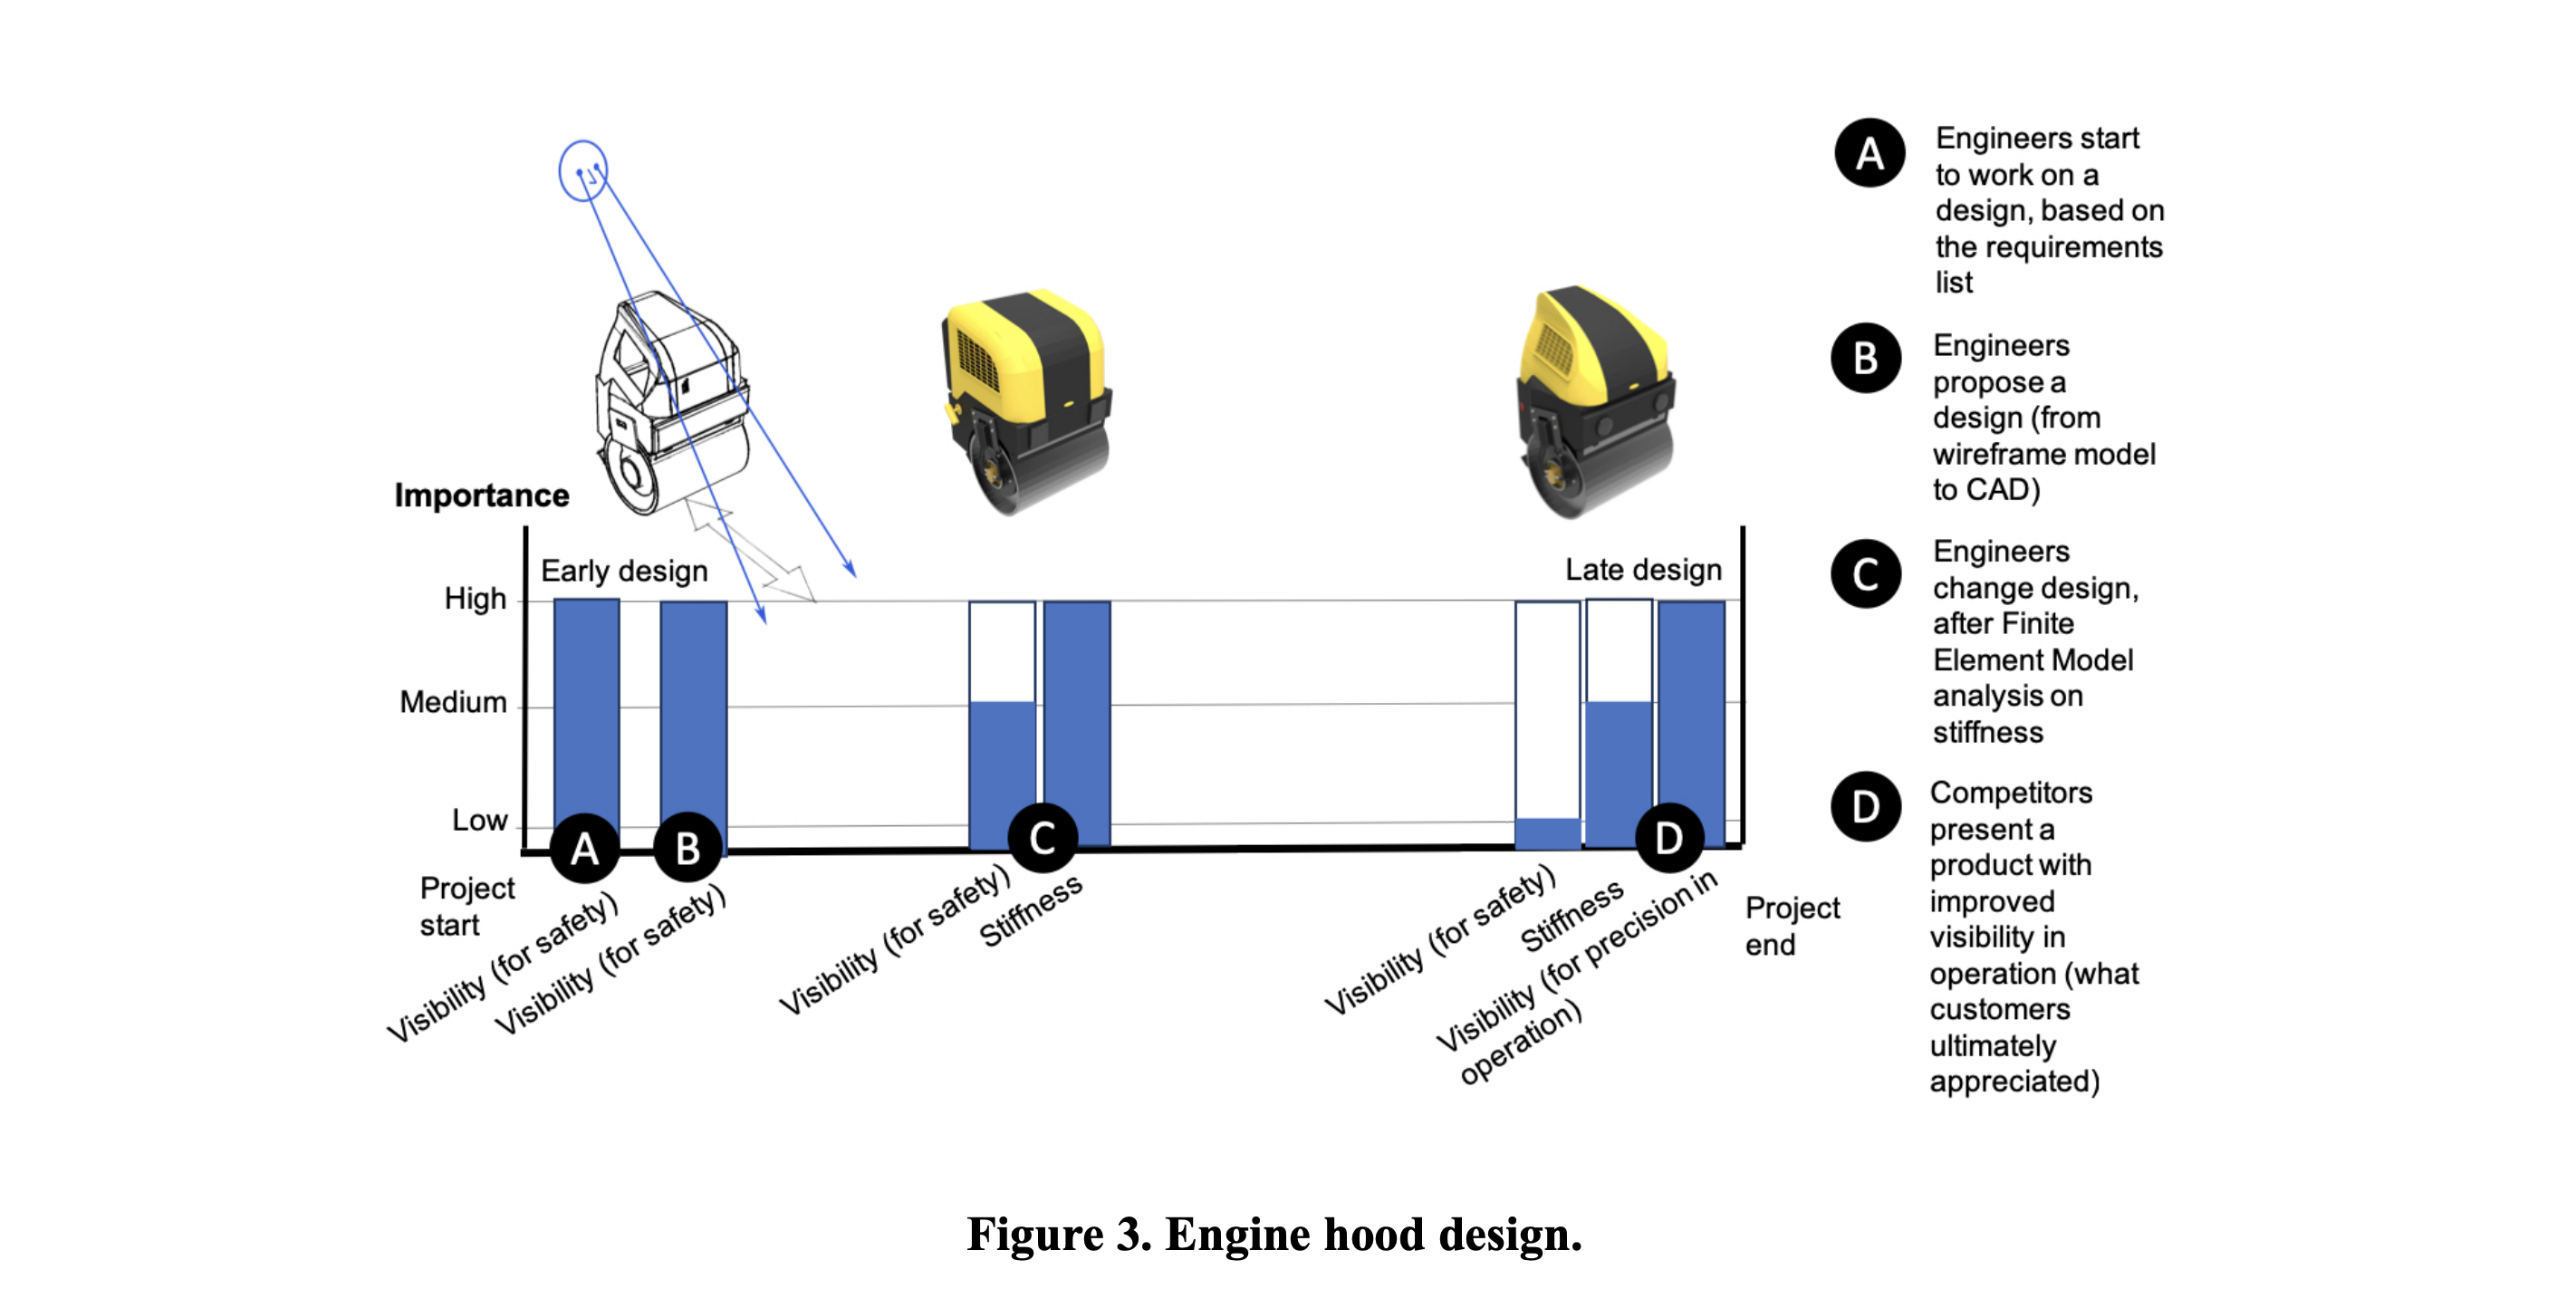 Using models as boundary objects in early design negotiations: analysis and implications for decision support systems